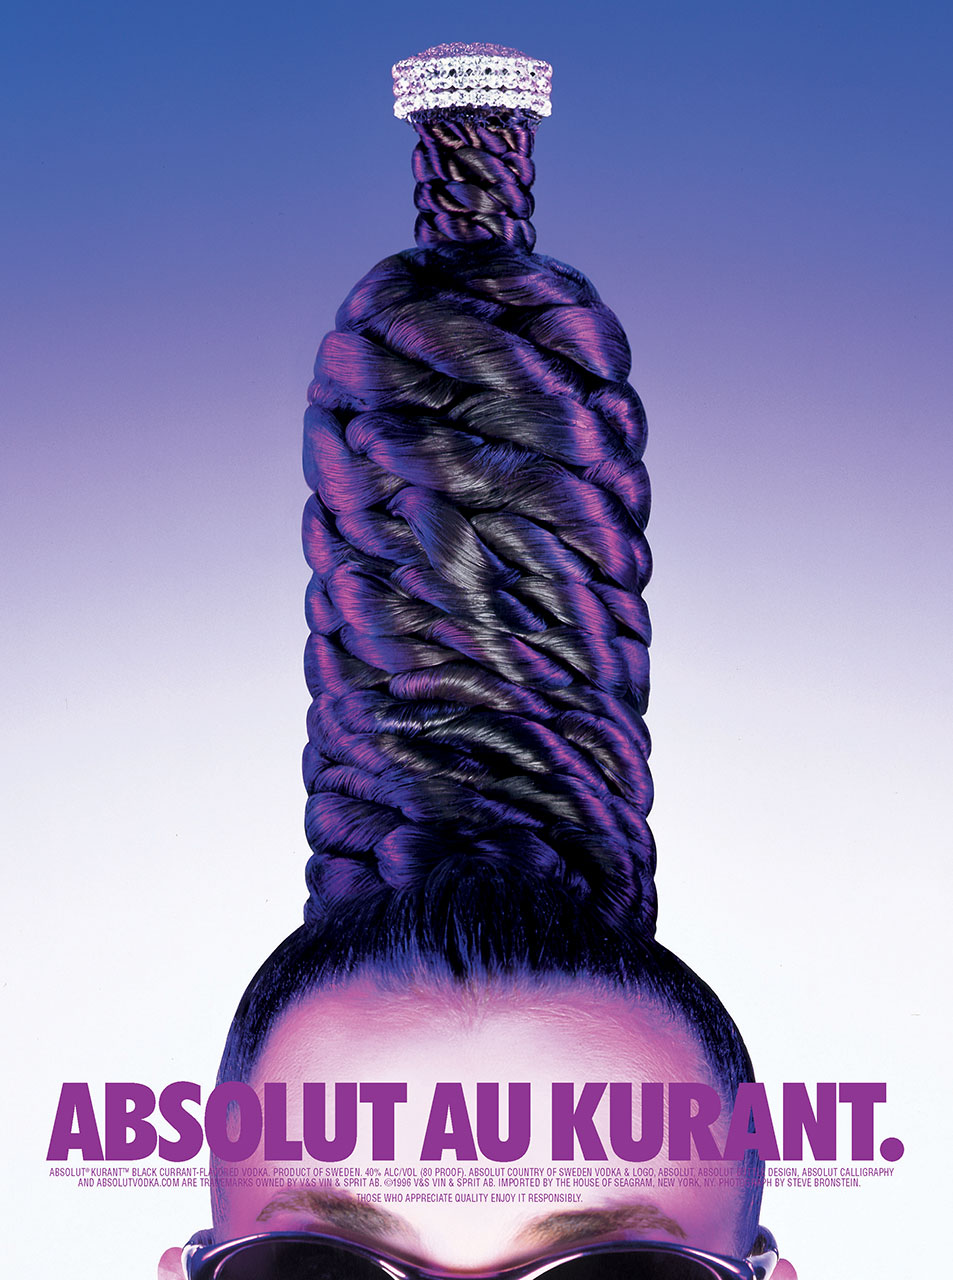 Print ad campaign for Absolut Kurant flavored vodka released to major consumer publications nationwide.